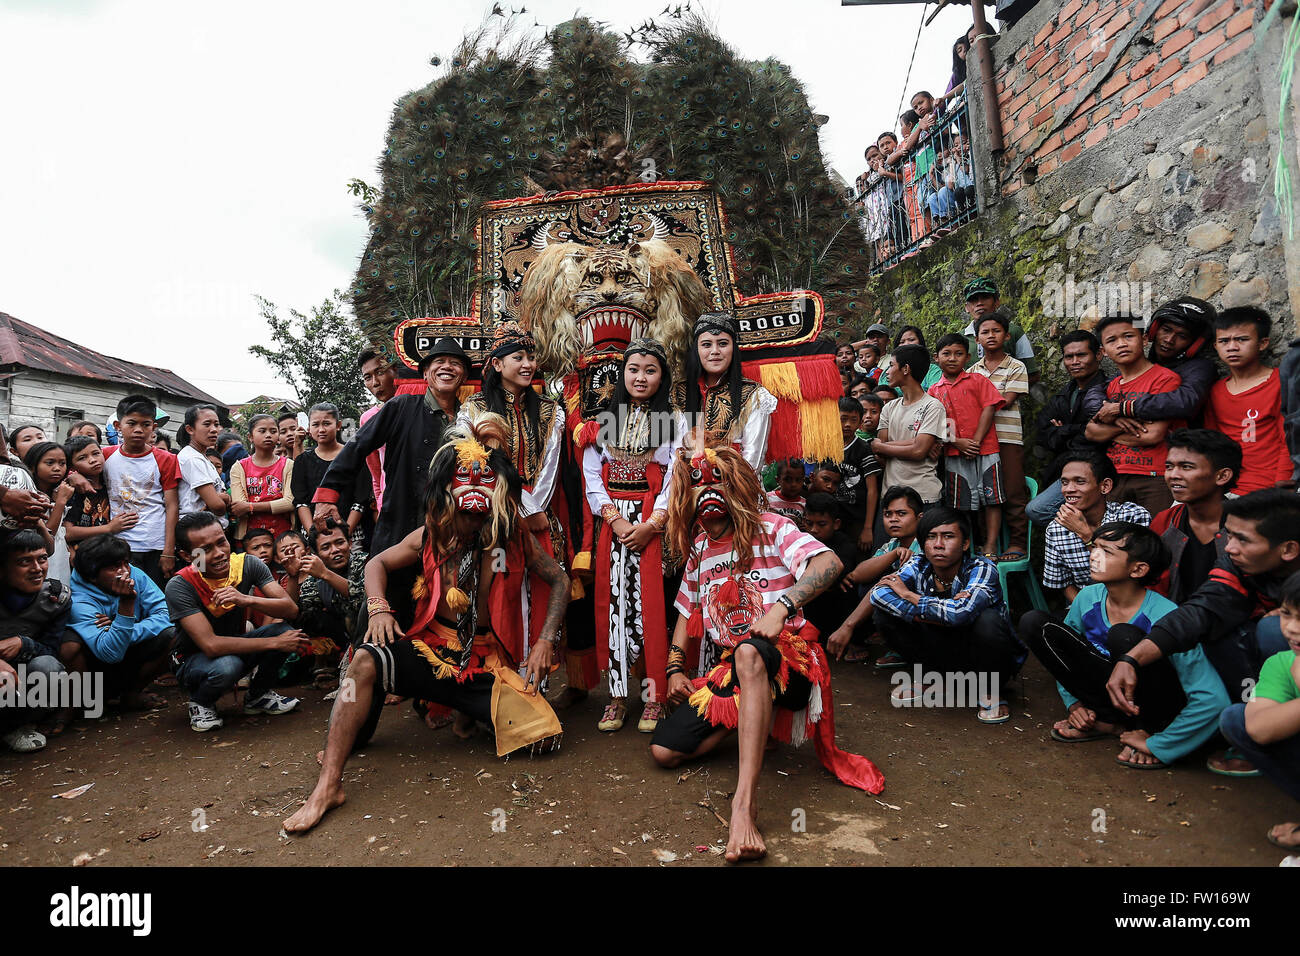 Reog ponorogo stock photos reog ponorogo stock images alamy group of players reog ponorogo pose before perfoming stock image thecheapjerseys Gallery